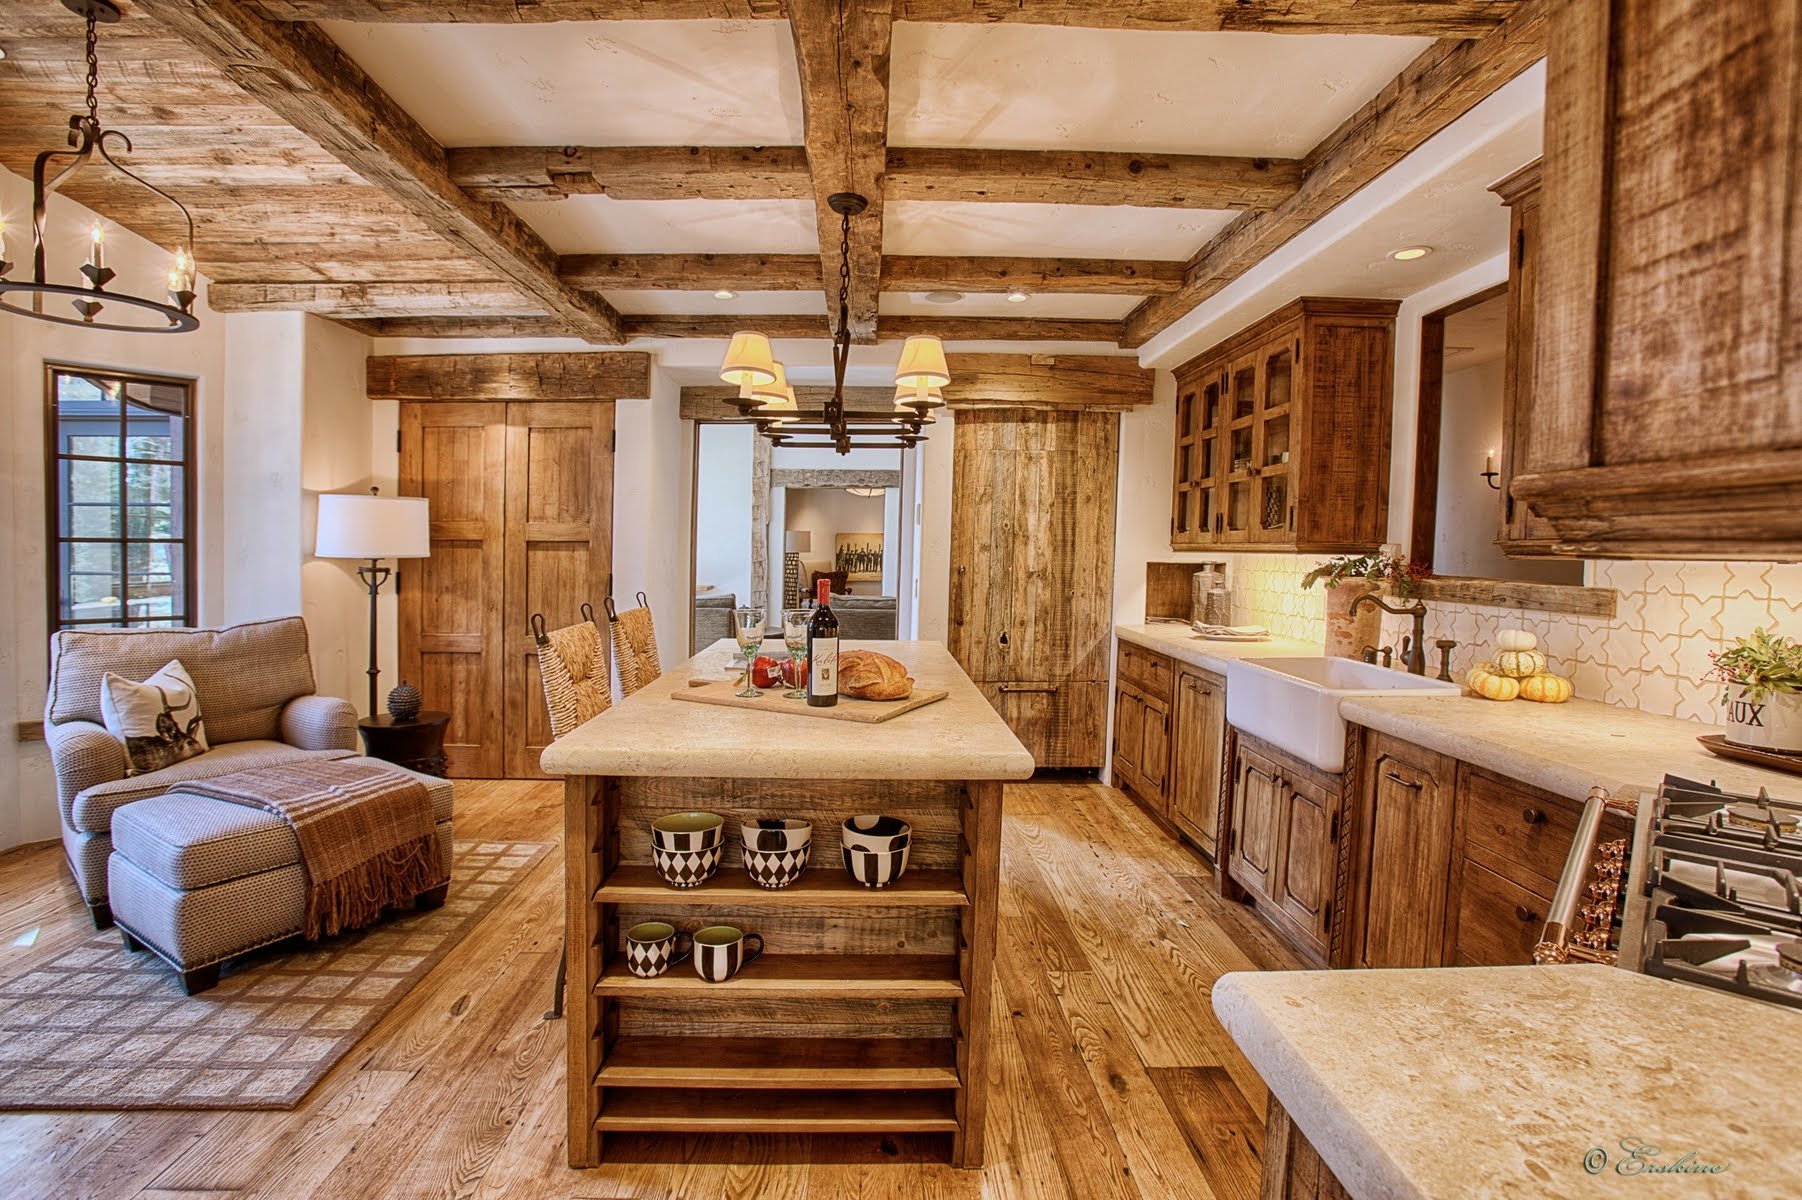 Nice Undeniable Rustic Kitchen Interior With Wooden Cabinets And Island And  Exposed Beams